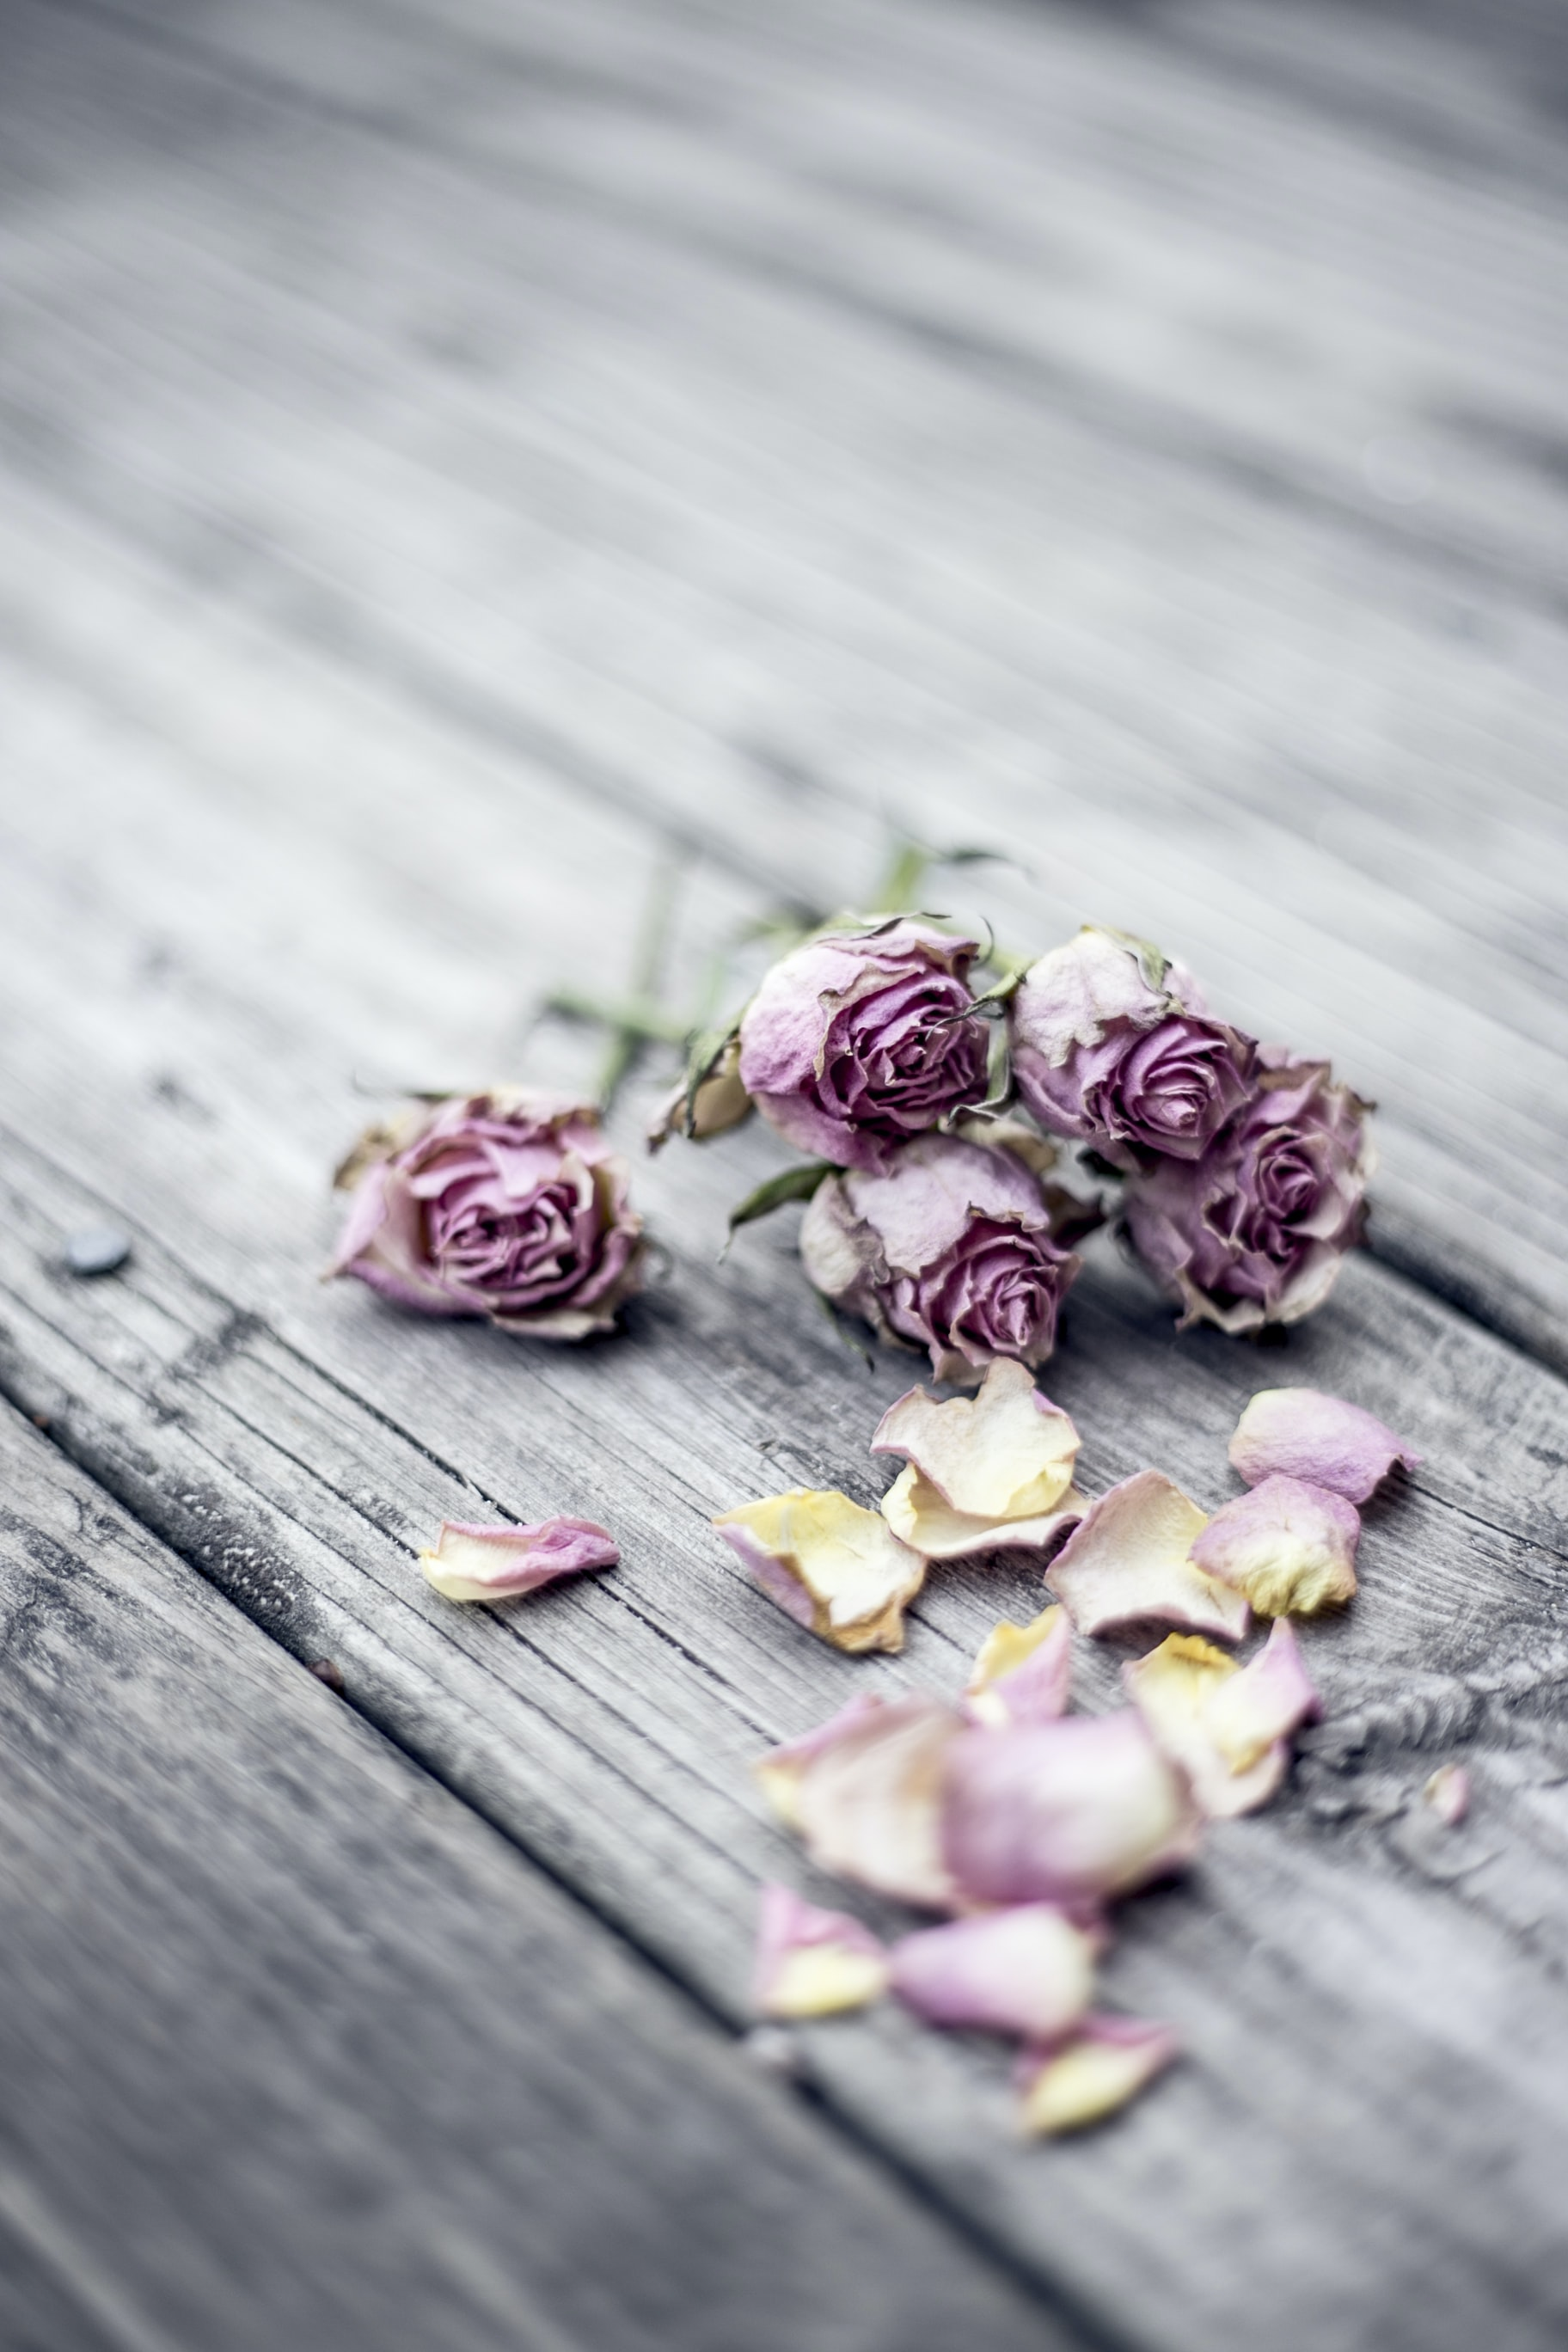 pink rose flowers on gray wooden floor